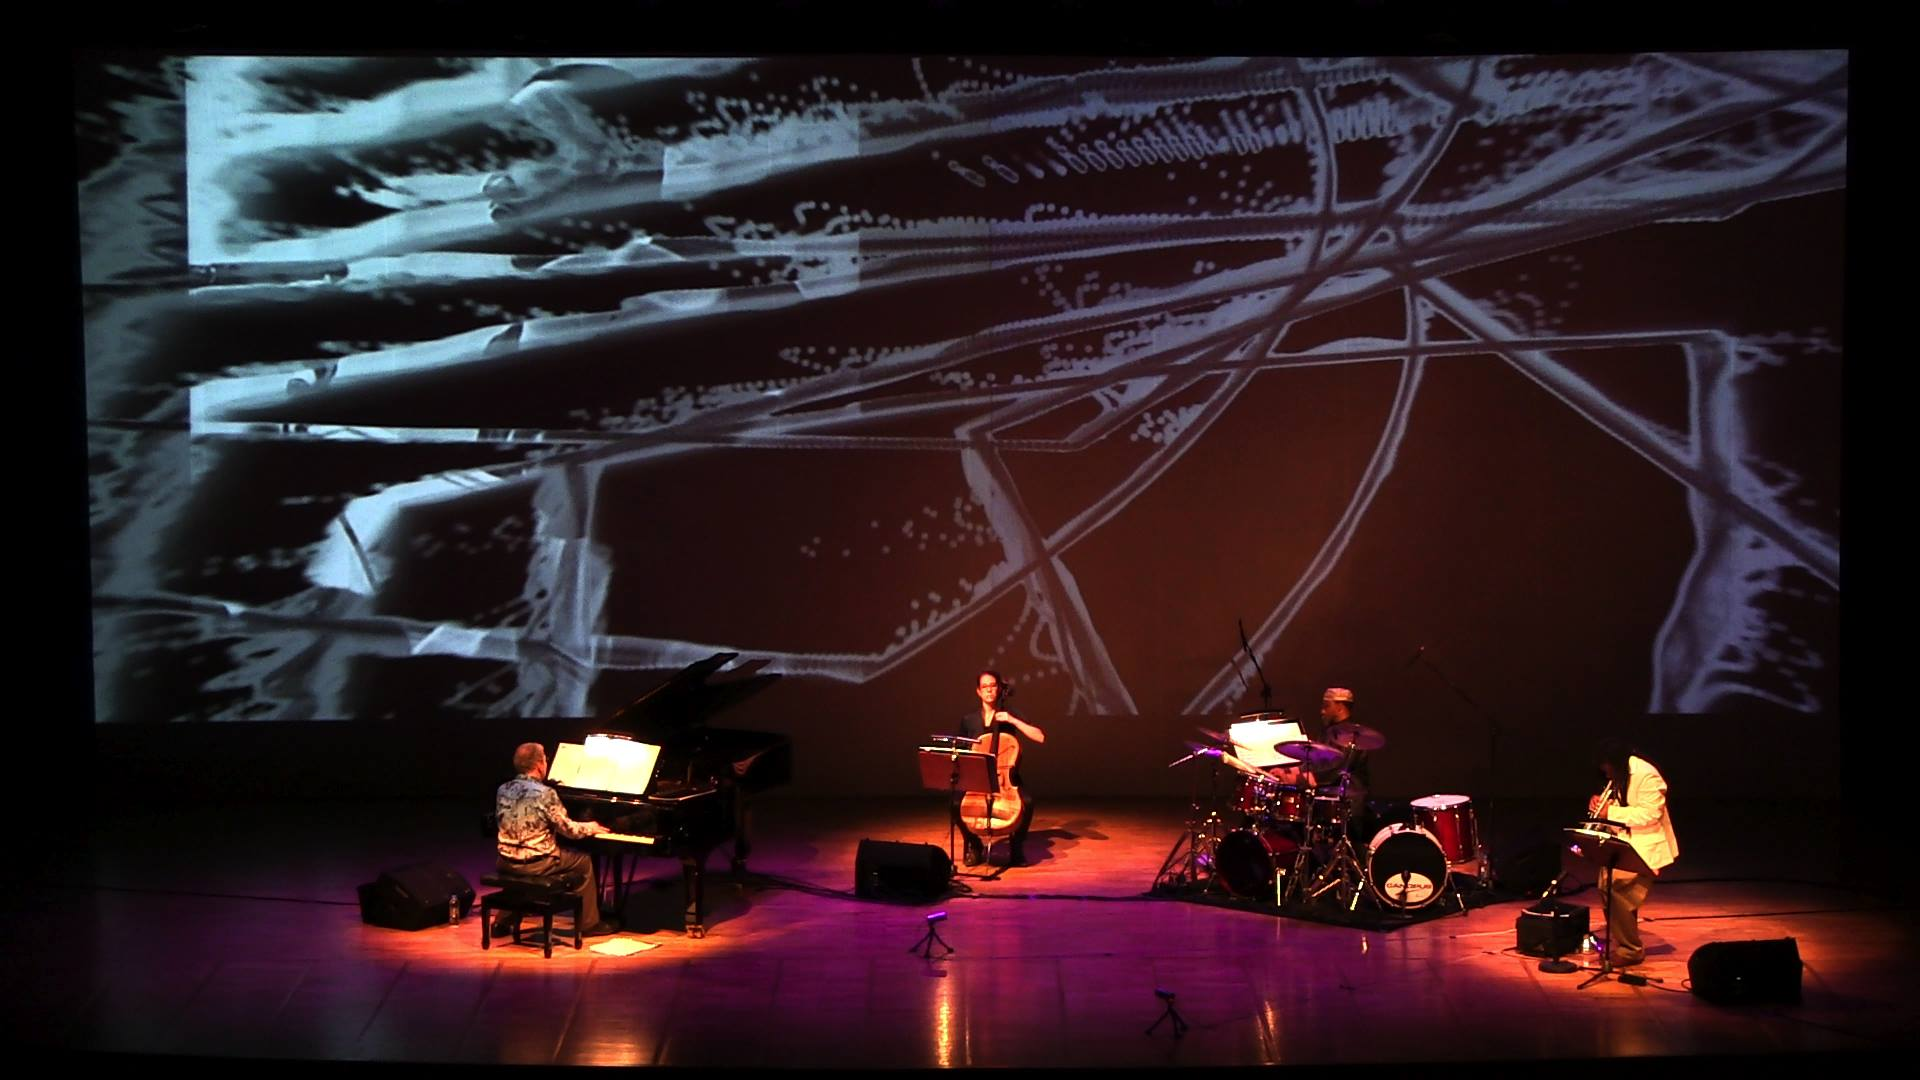 Wadada Leo Smith's Golden Quartet (Anthony Davis, Ashley Walters, Pheeroan akLaff, and Smith) at Cemal Reşit Rey Concert Hall in Istanbul